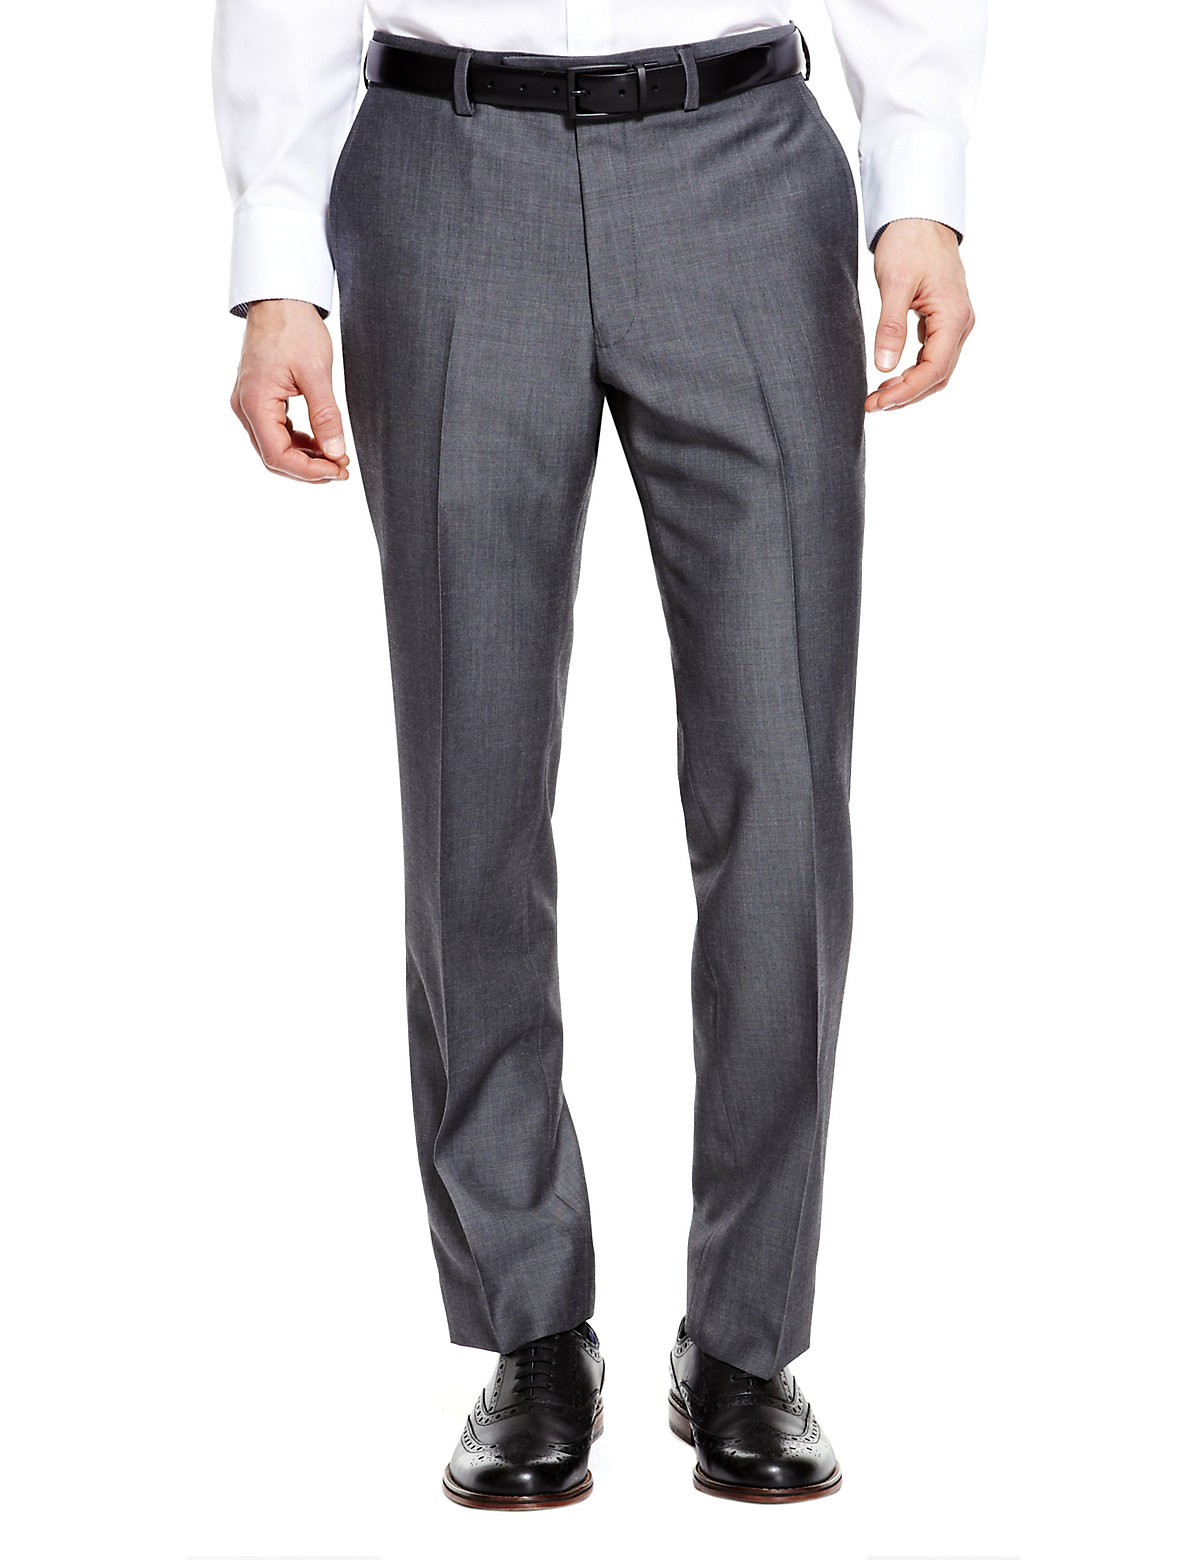 Mens Official England Trousers MS Autograph Suitwear Grey 4031in